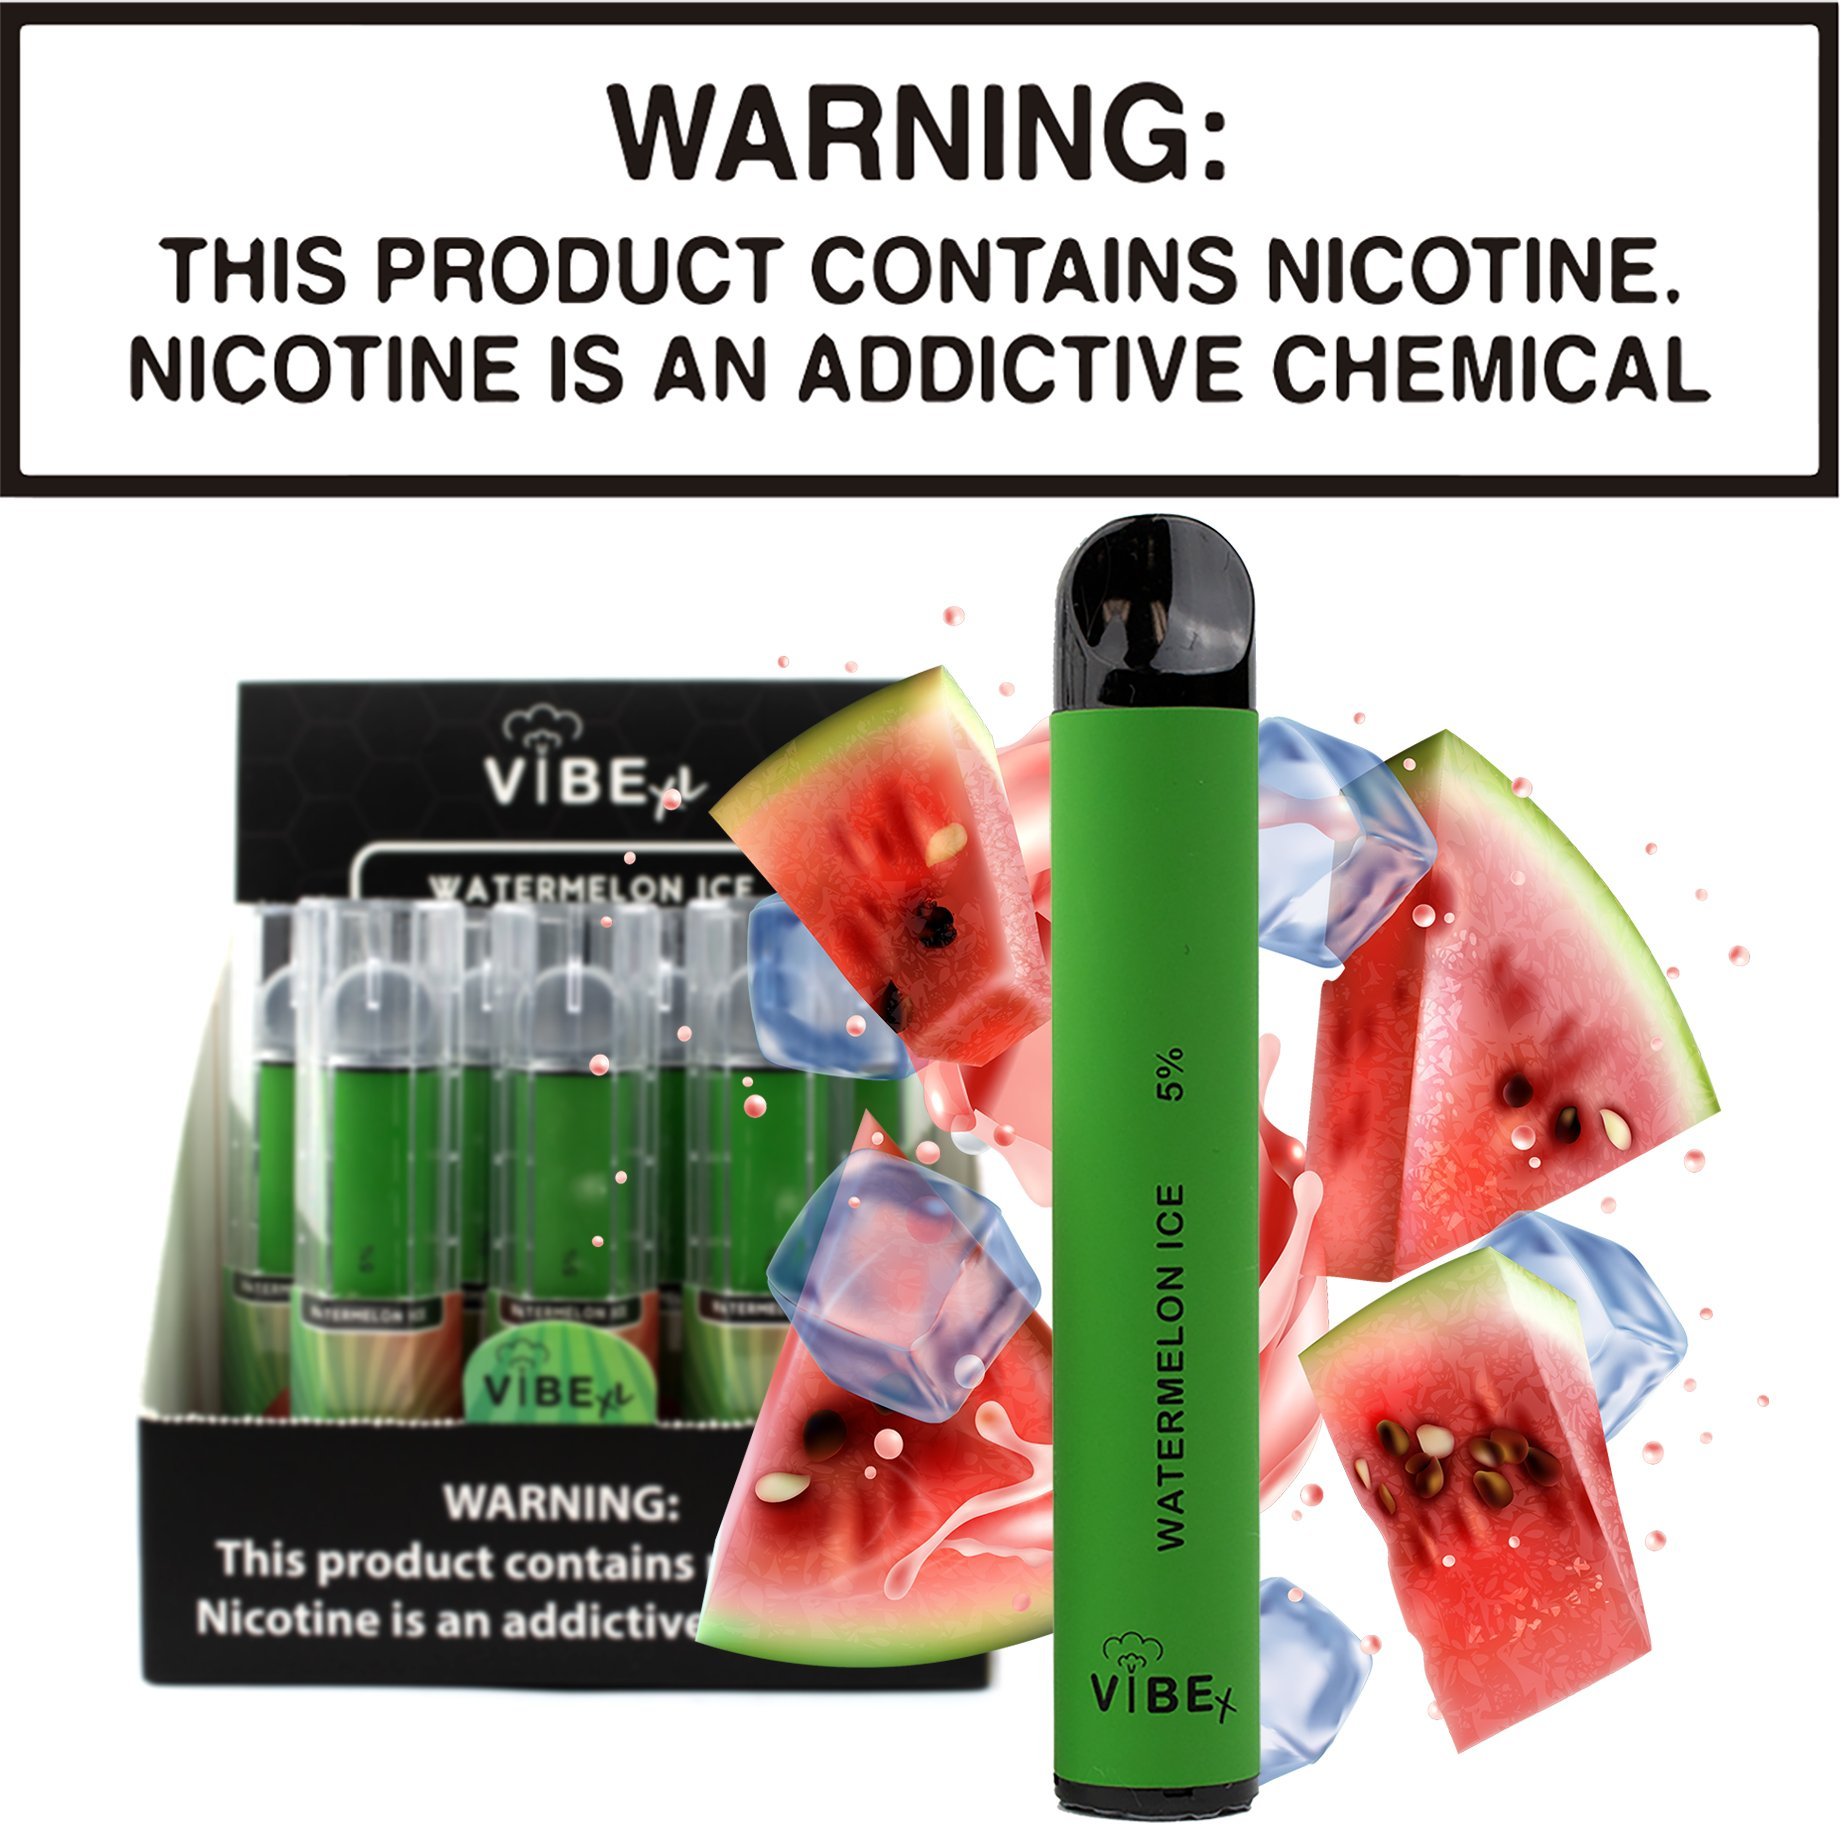 Vibe XL - Watermelon Ice (Disposable Device)